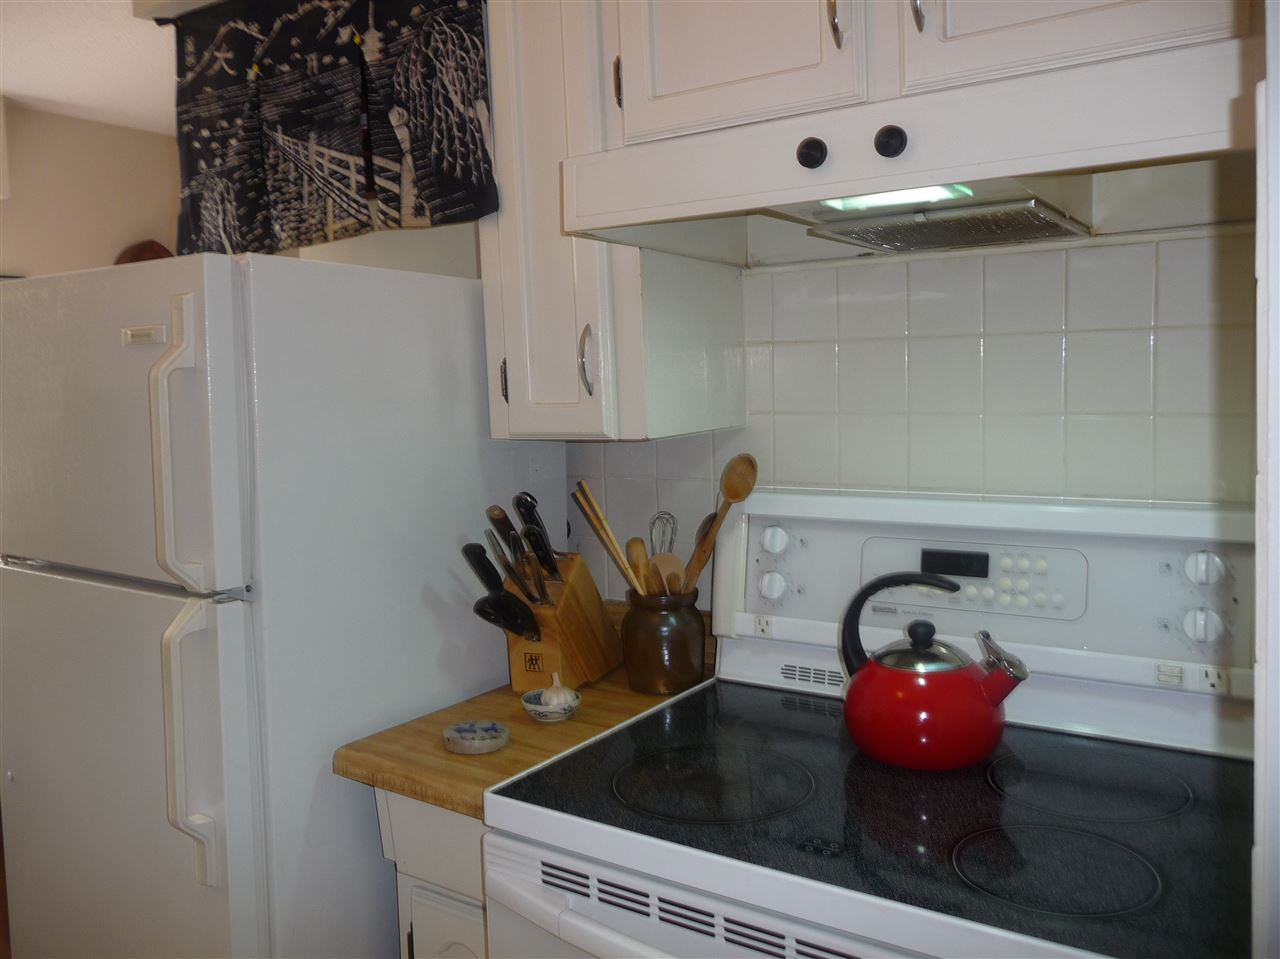 Photo 3: 103 2910 ONTARIO STREET in Vancouver: Mount Pleasant VE Condo for sale (Vancouver East)  : MLS® # R2058838